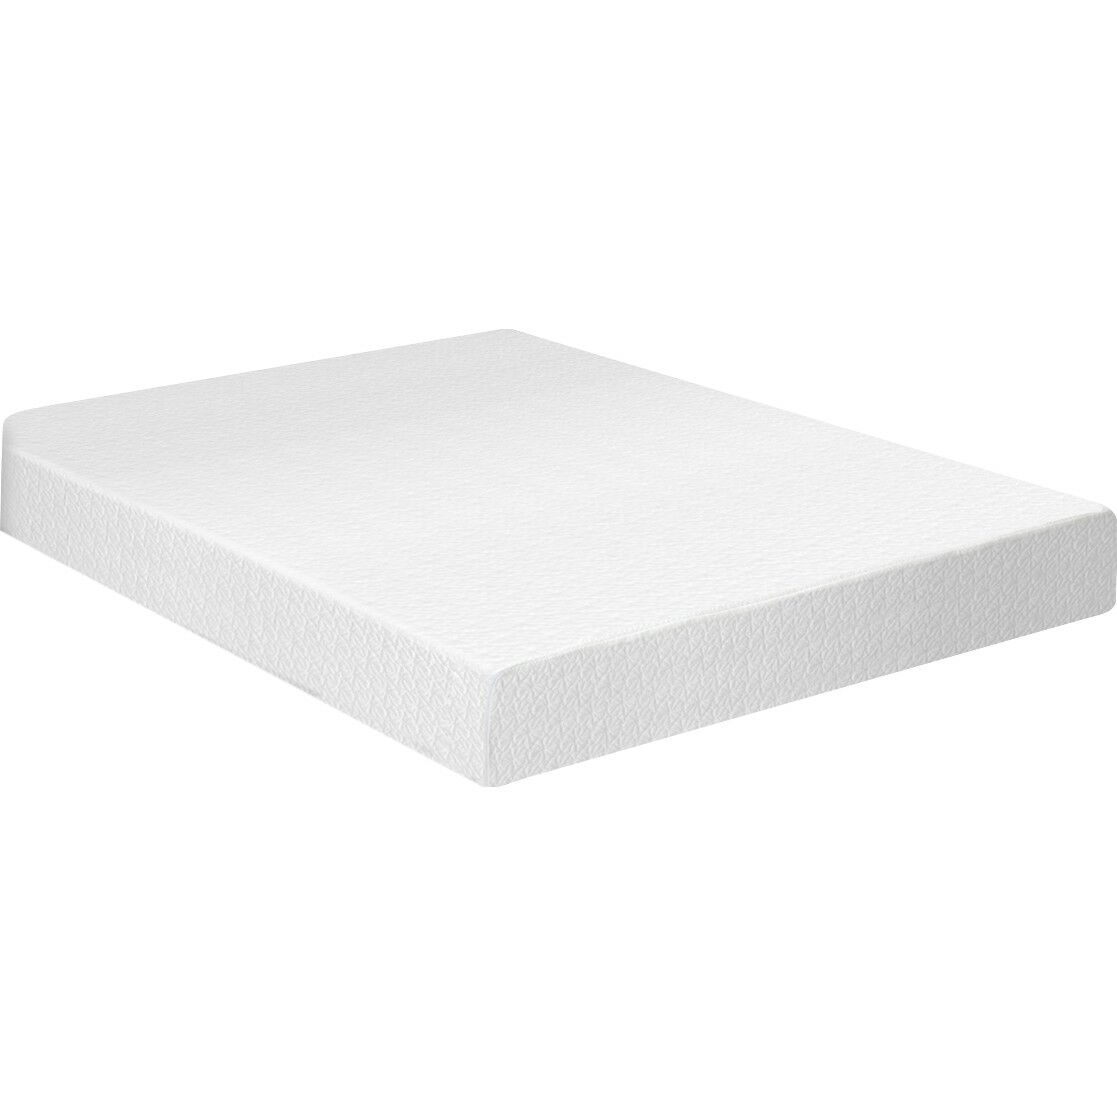 Panel Bed with Mattress Size: Full